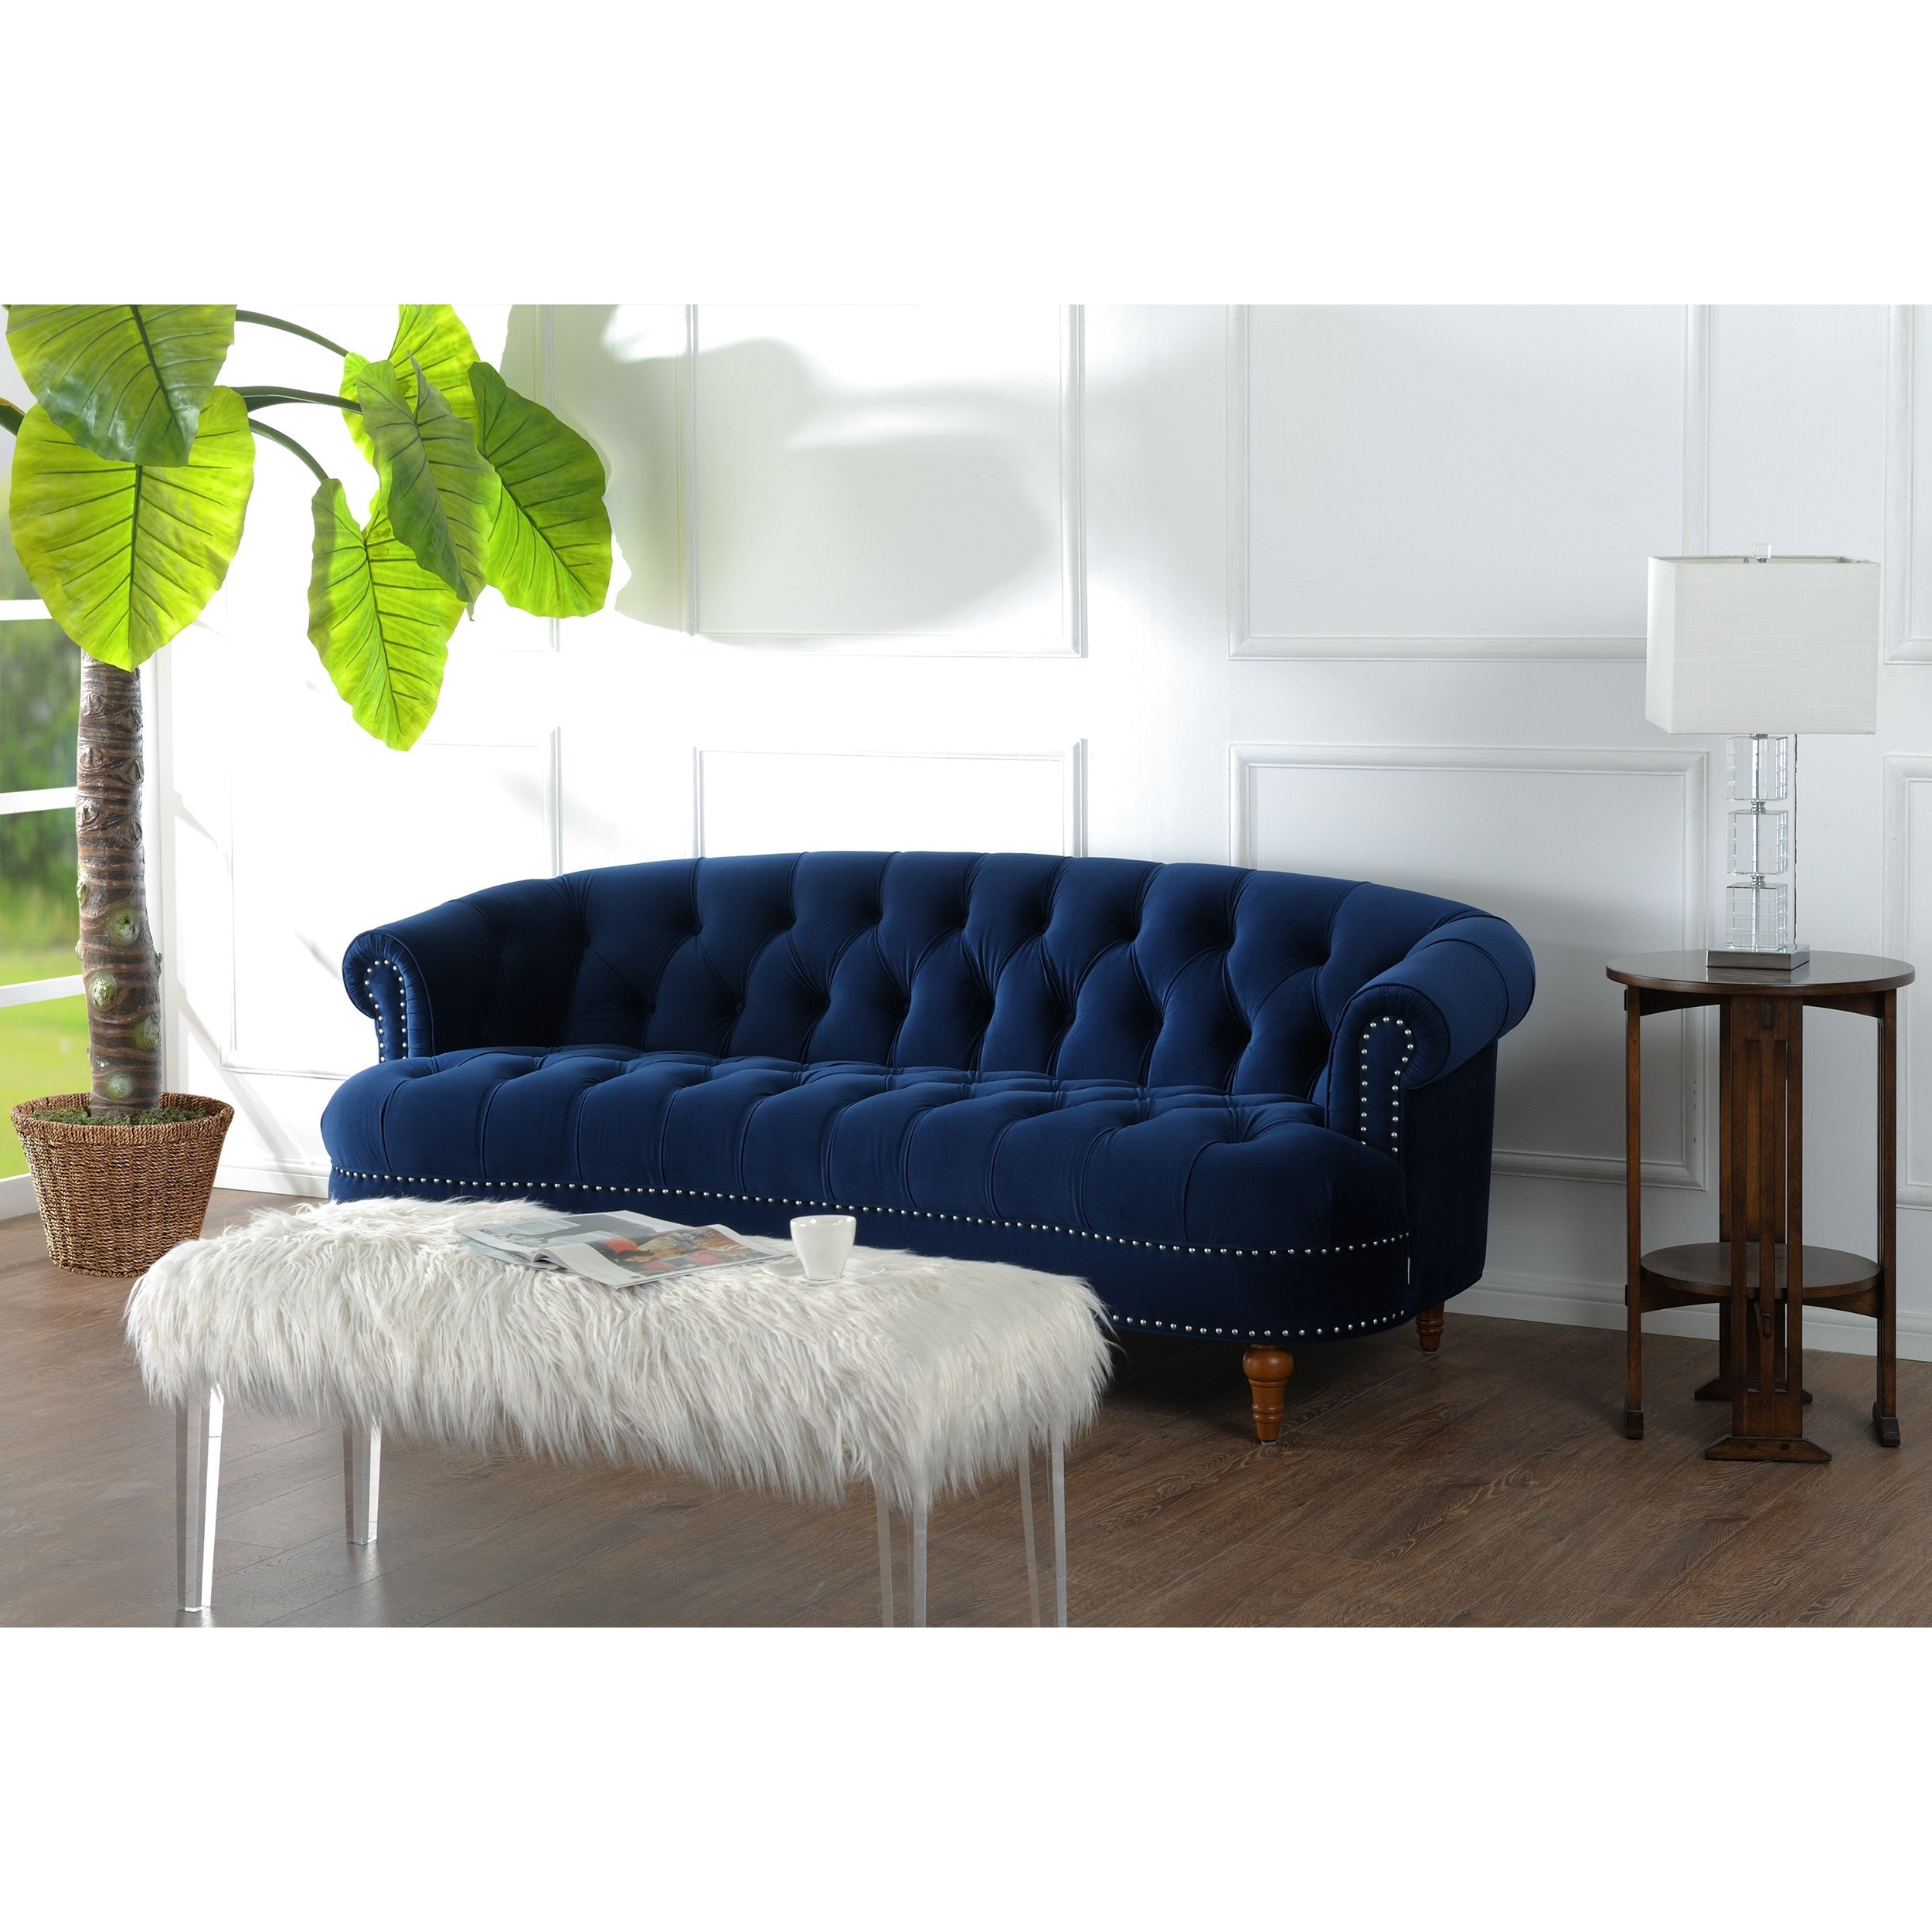 Genial Shop Jennifer Taylor La Rosa Chesterfield Sofa   On Sale   Free Shipping  Today   Overstock.com   10046633